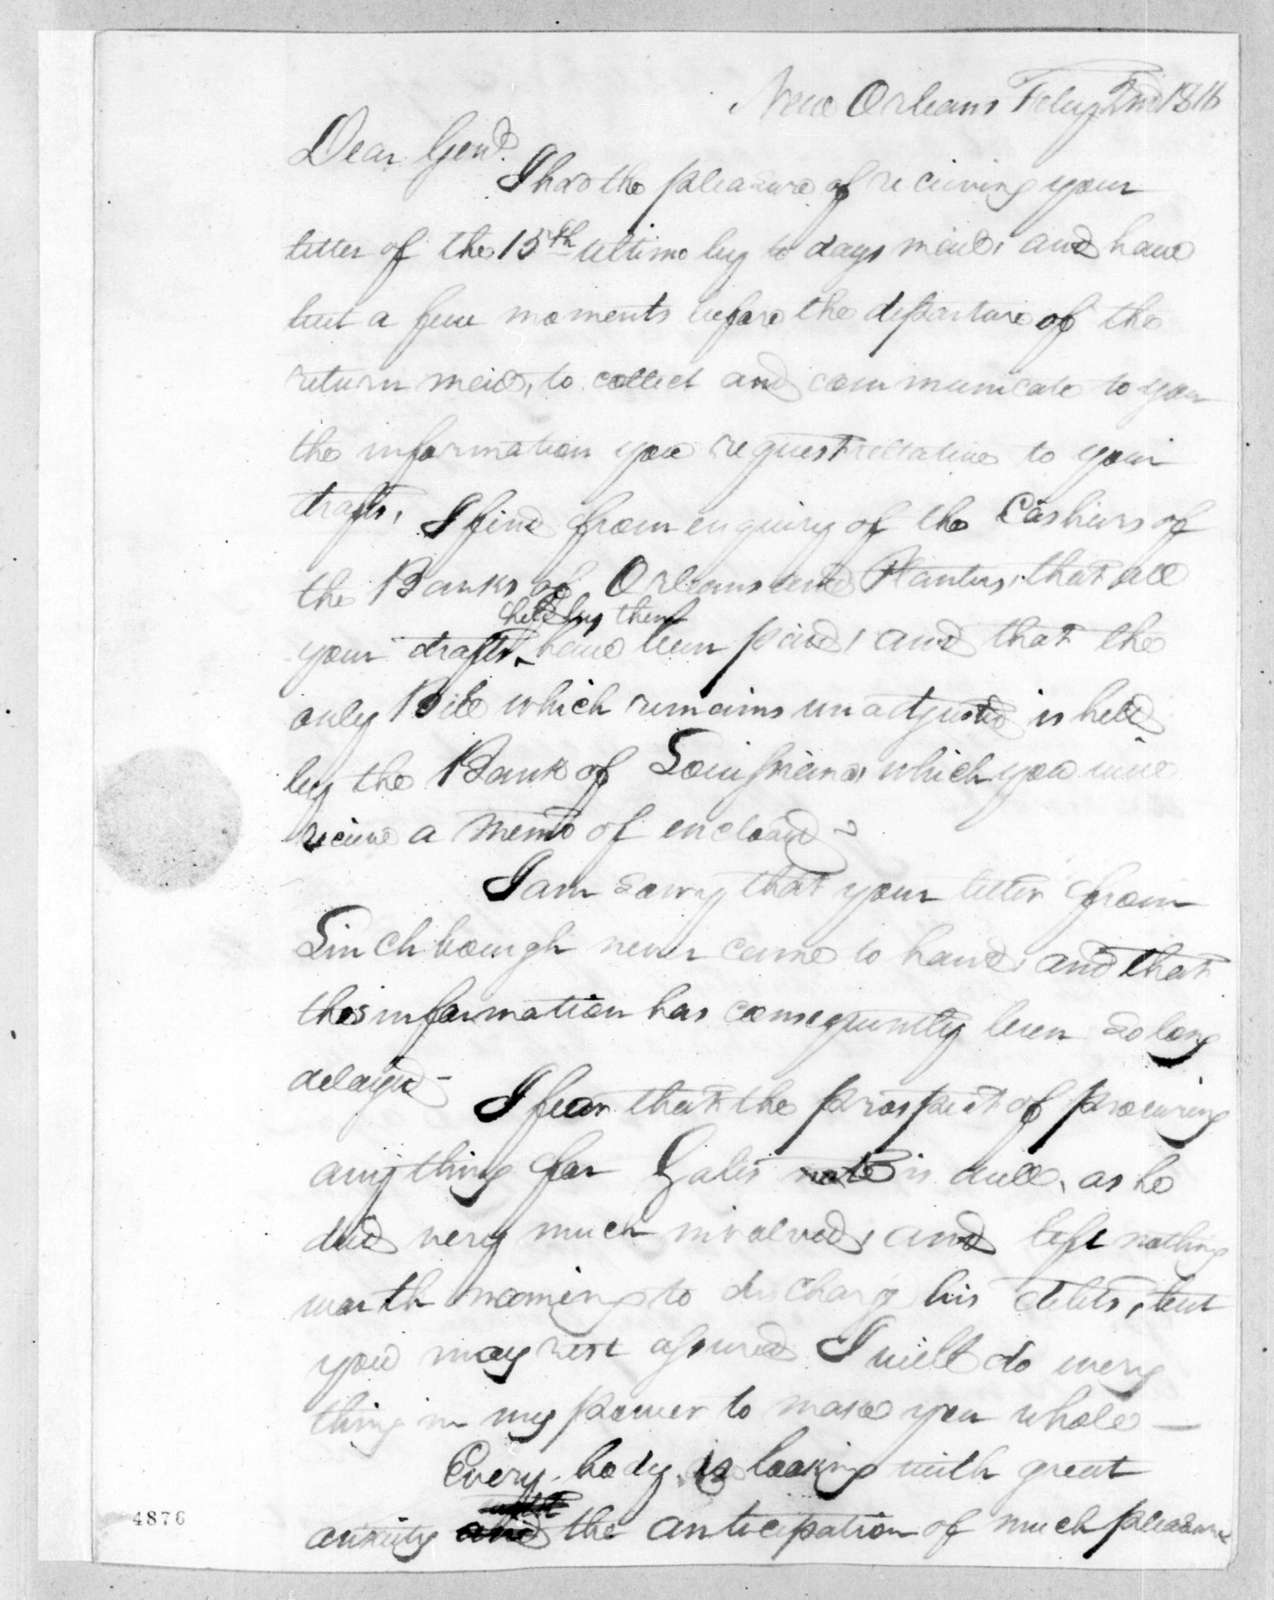 Thomas Langford Butler to Andrew Jackson, February 2, 1816